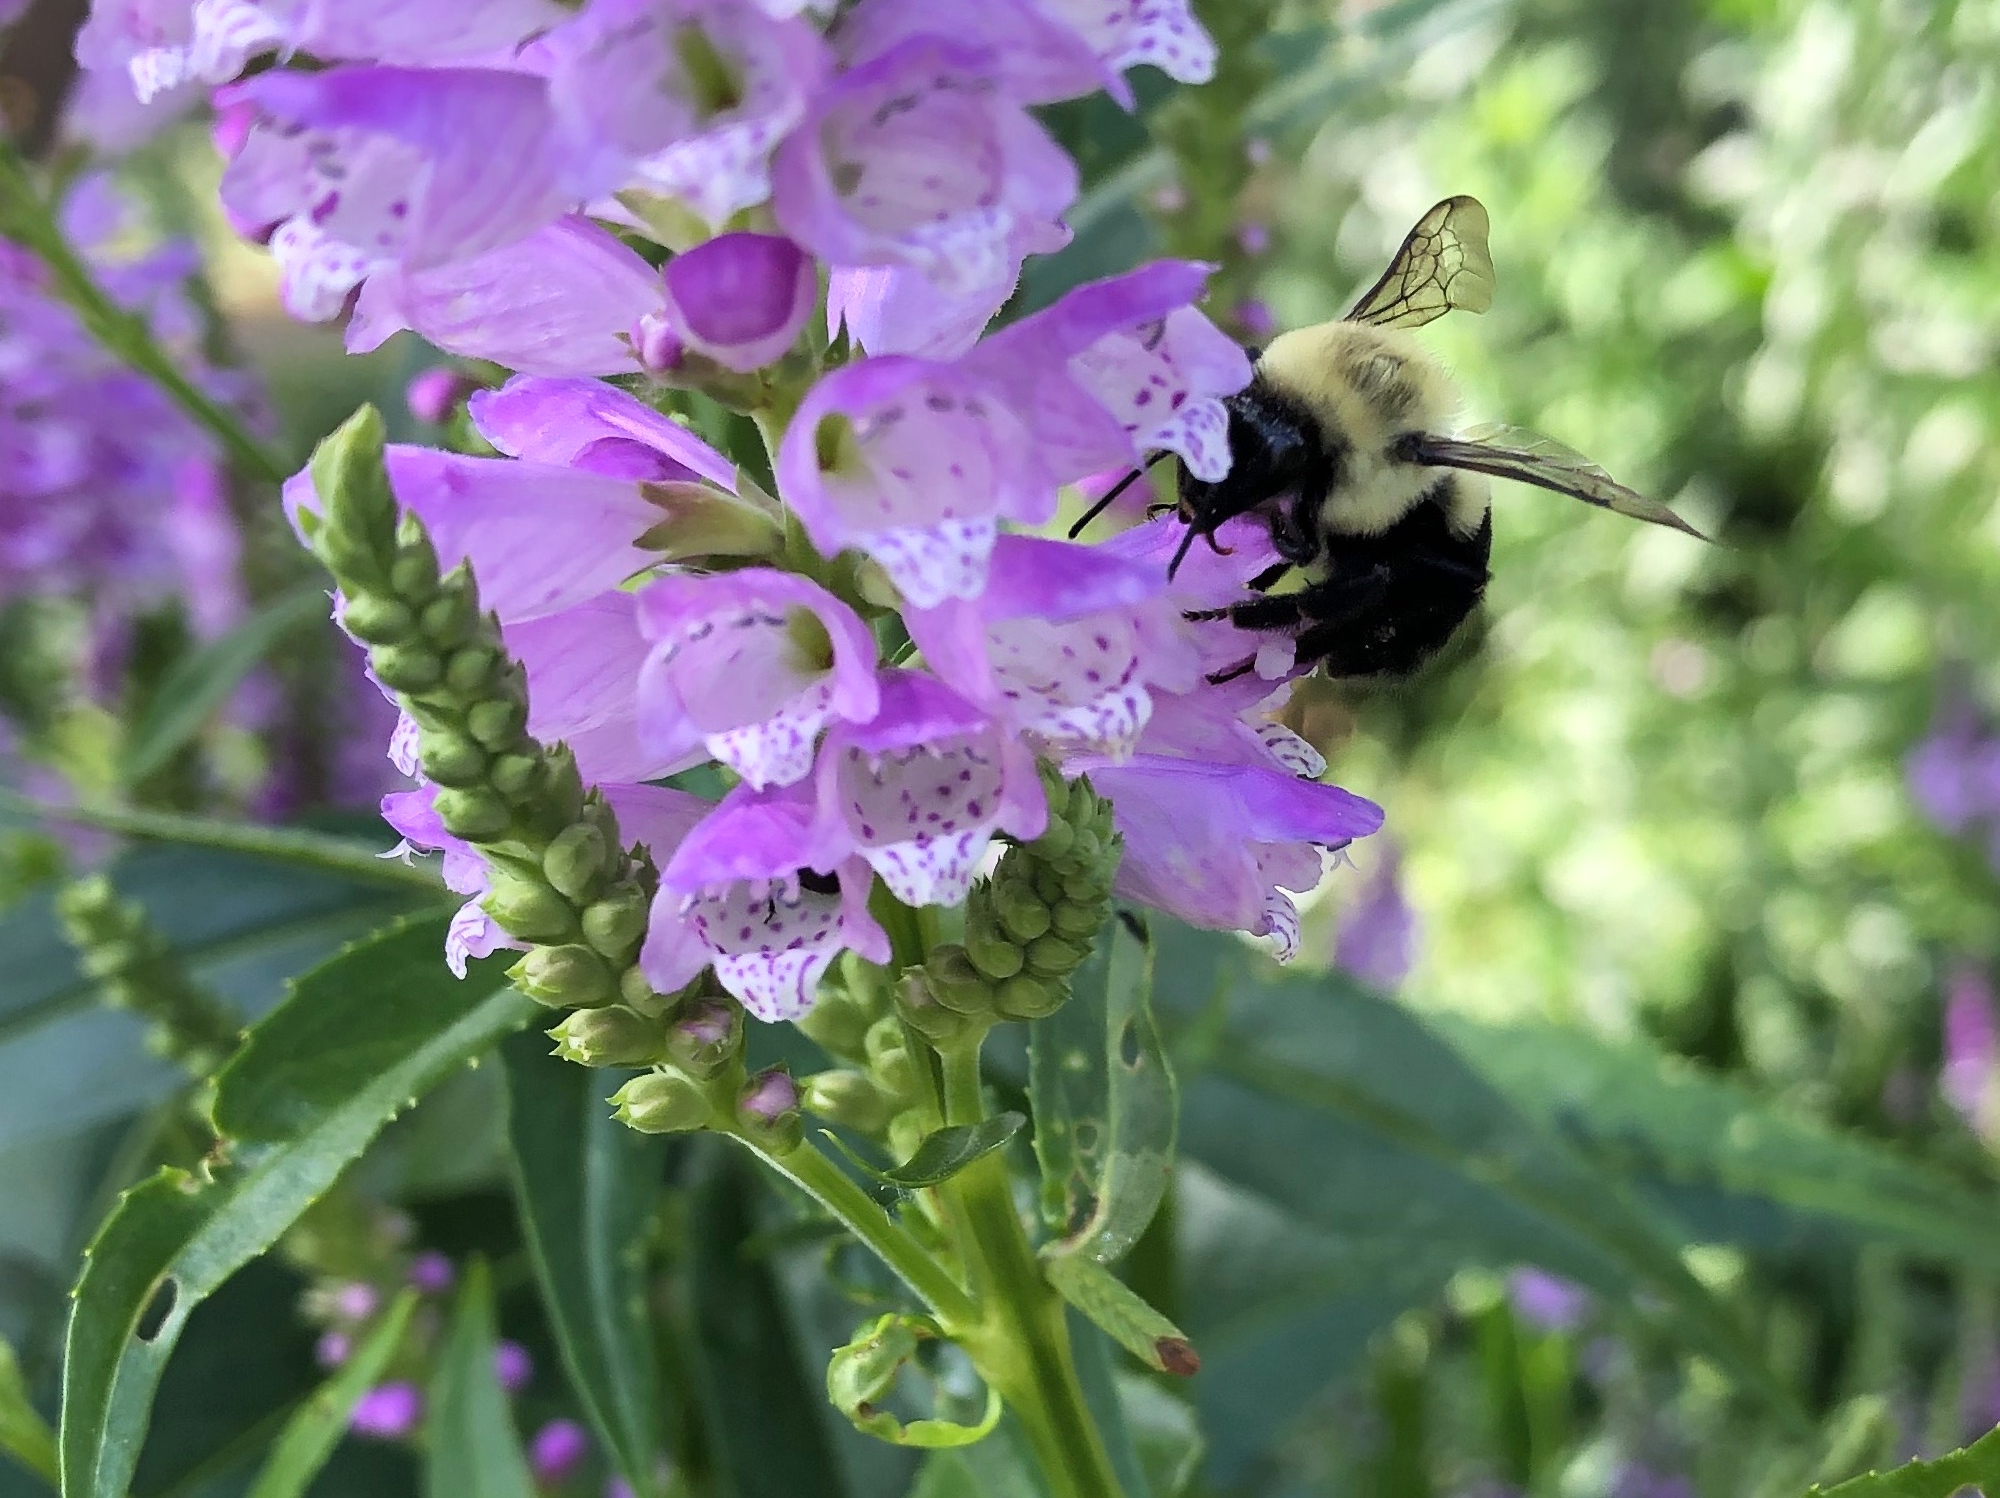 Bumblebee on Obedient Plant on August 2, 2020.